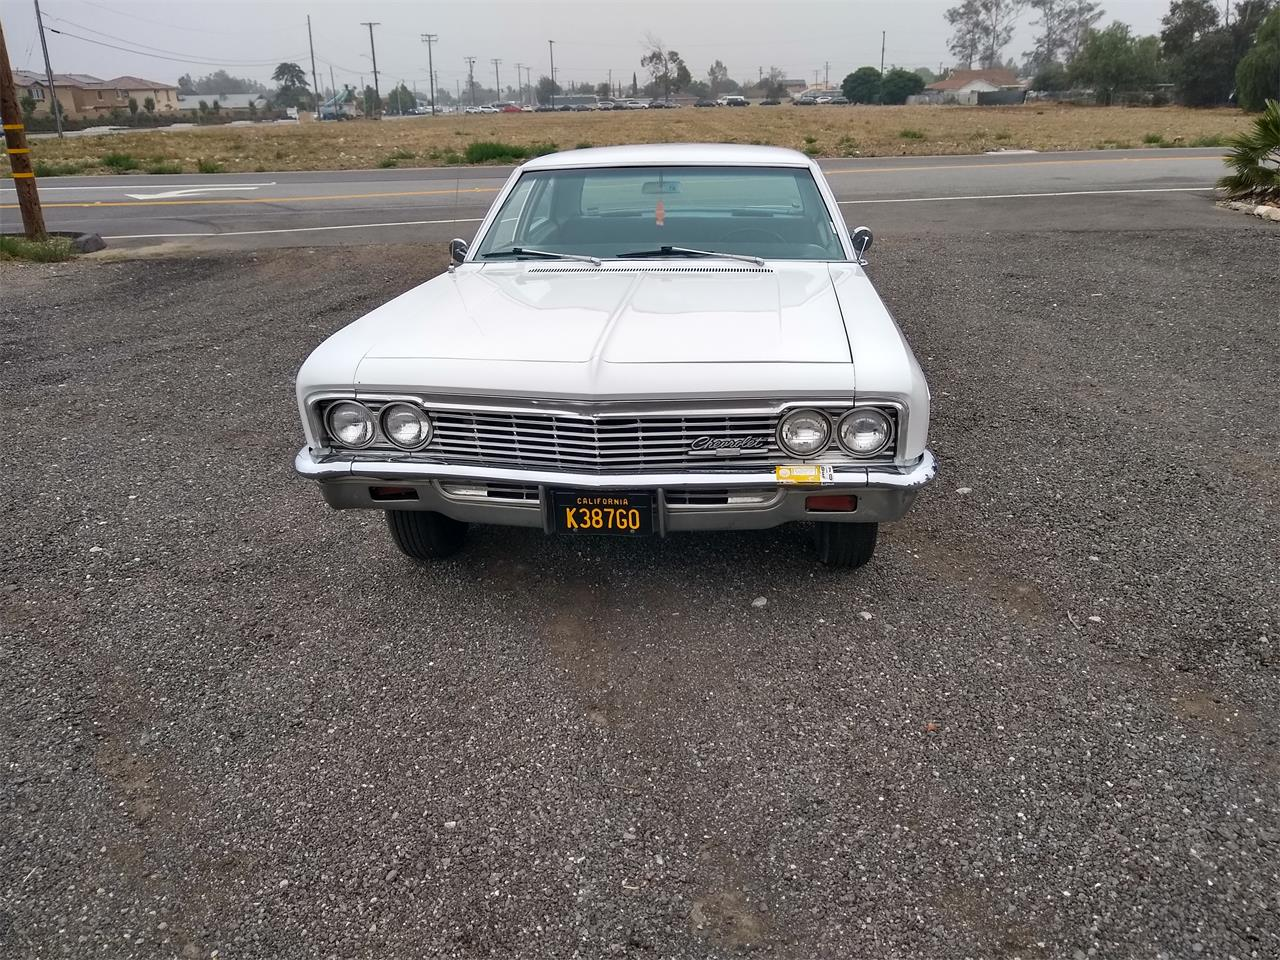 Large Picture of Classic '66 Chevrolet Bel Air located in Loma Linda  California - $25,000.00 Offered by a Private Seller - Q8ZE